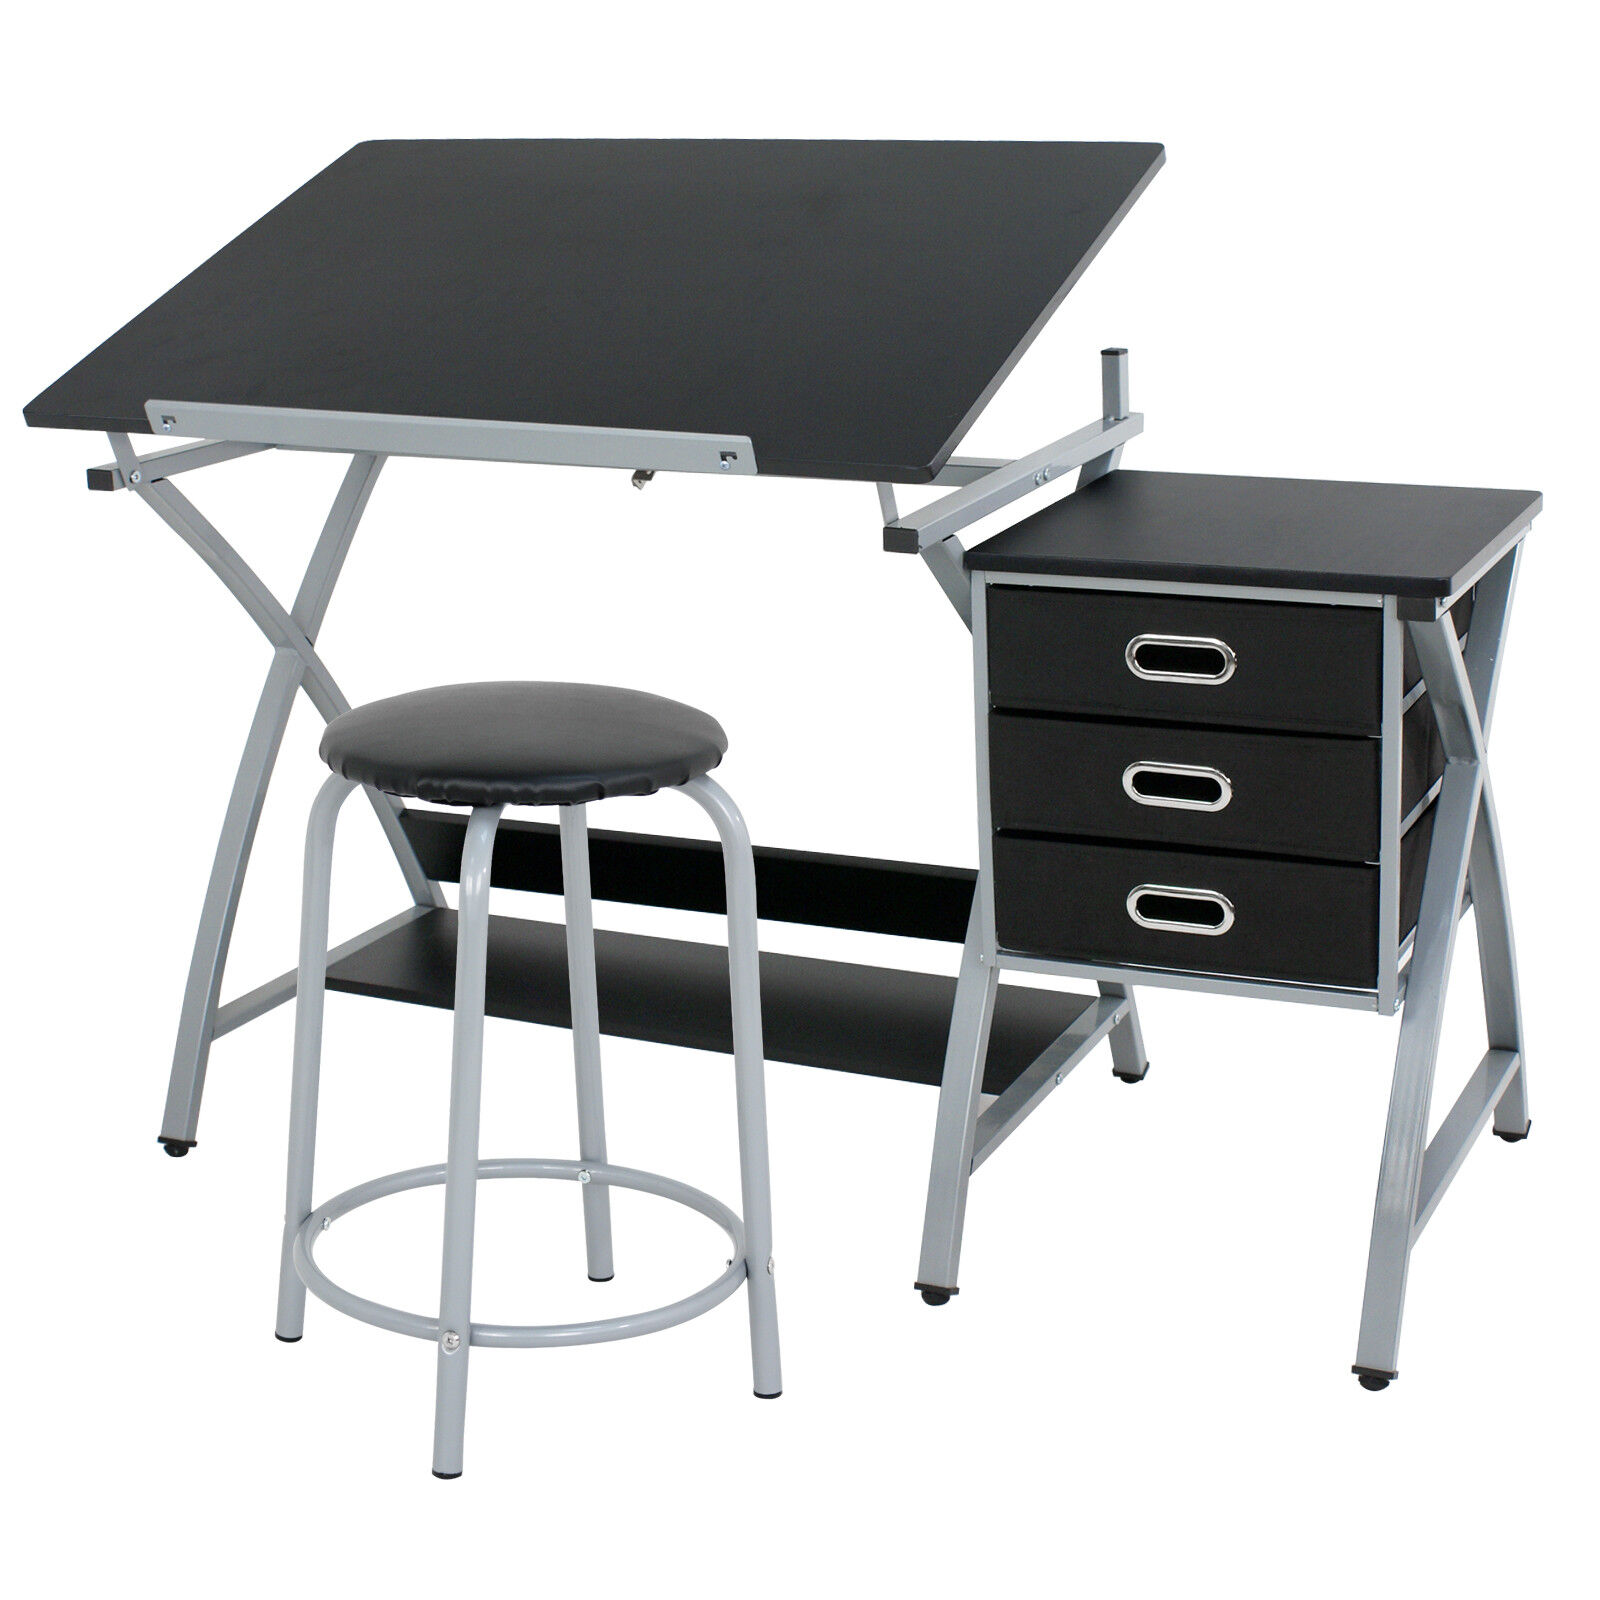 Drafting Table Station Glass Top Drawing Desk Craft Station Artist Multi Type Art Supplies